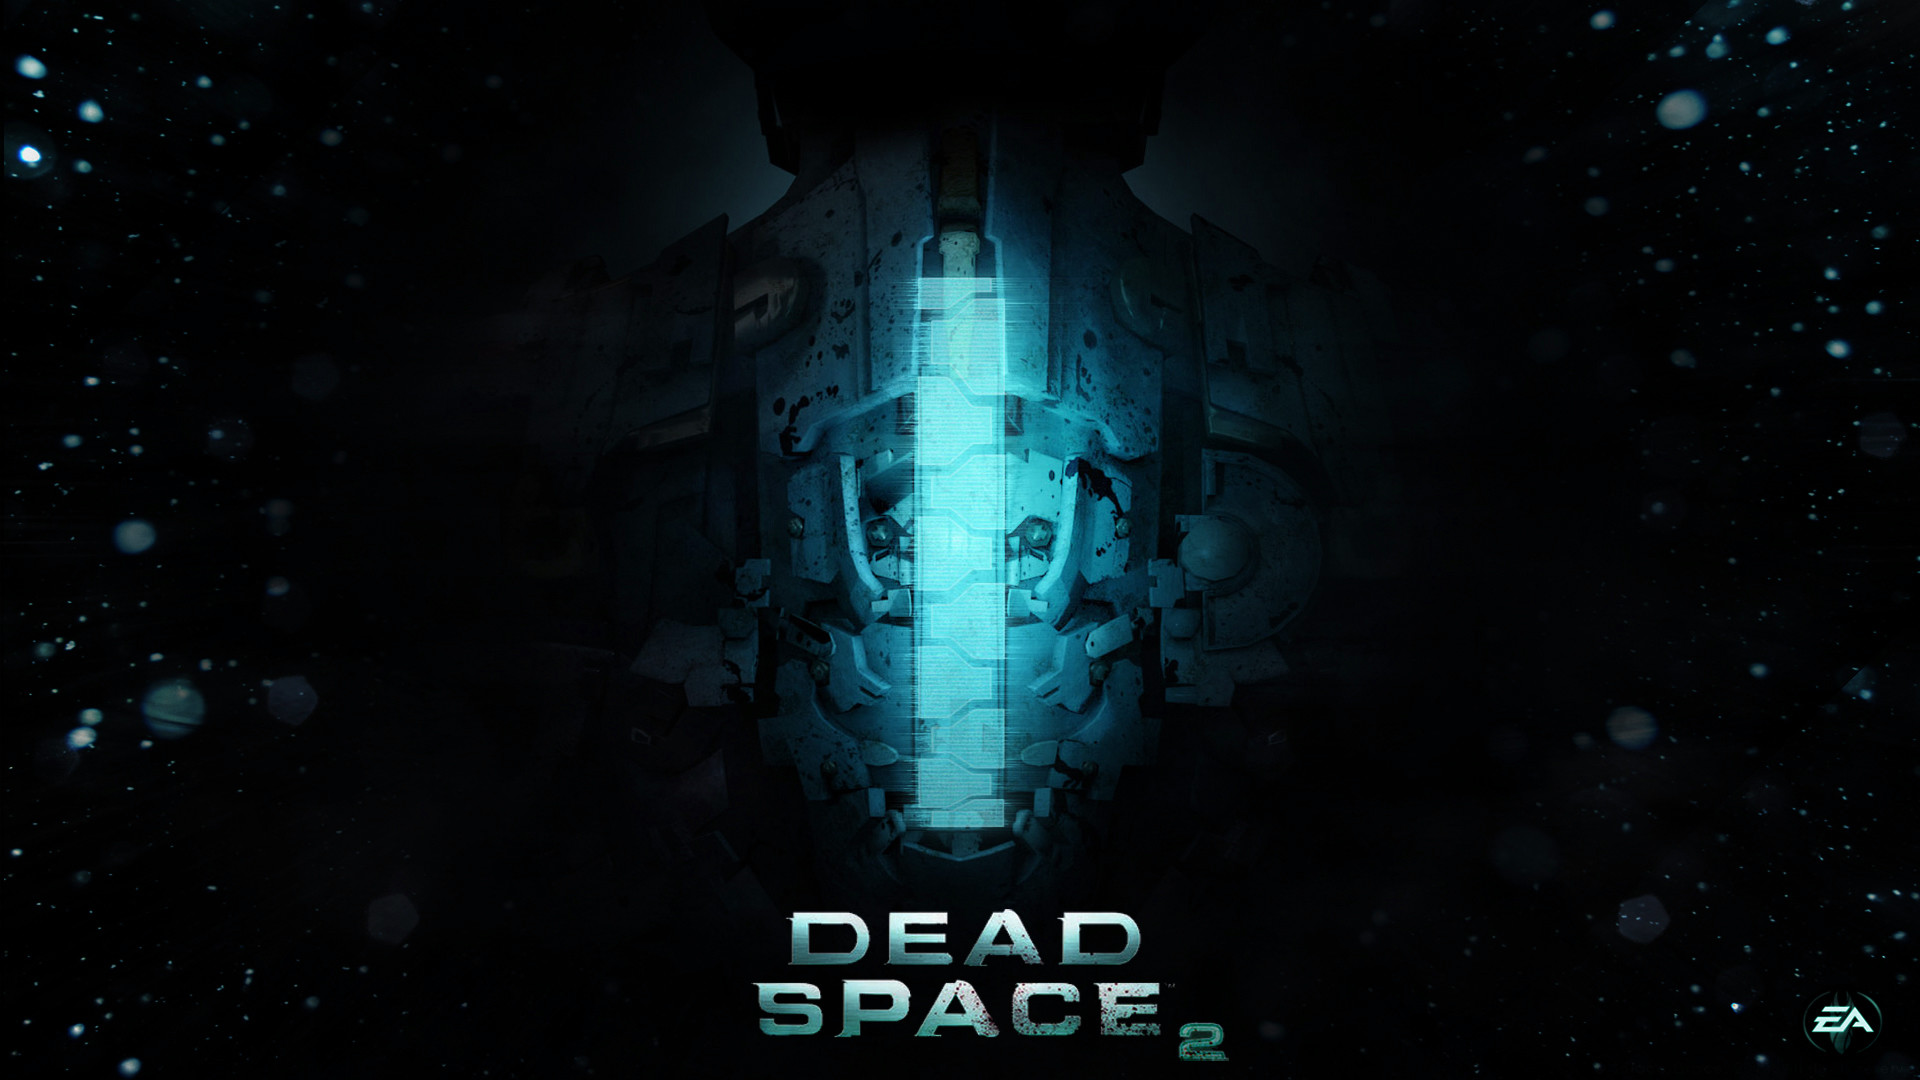 Deadspace Wallpaper Posted By Sarah Mercado